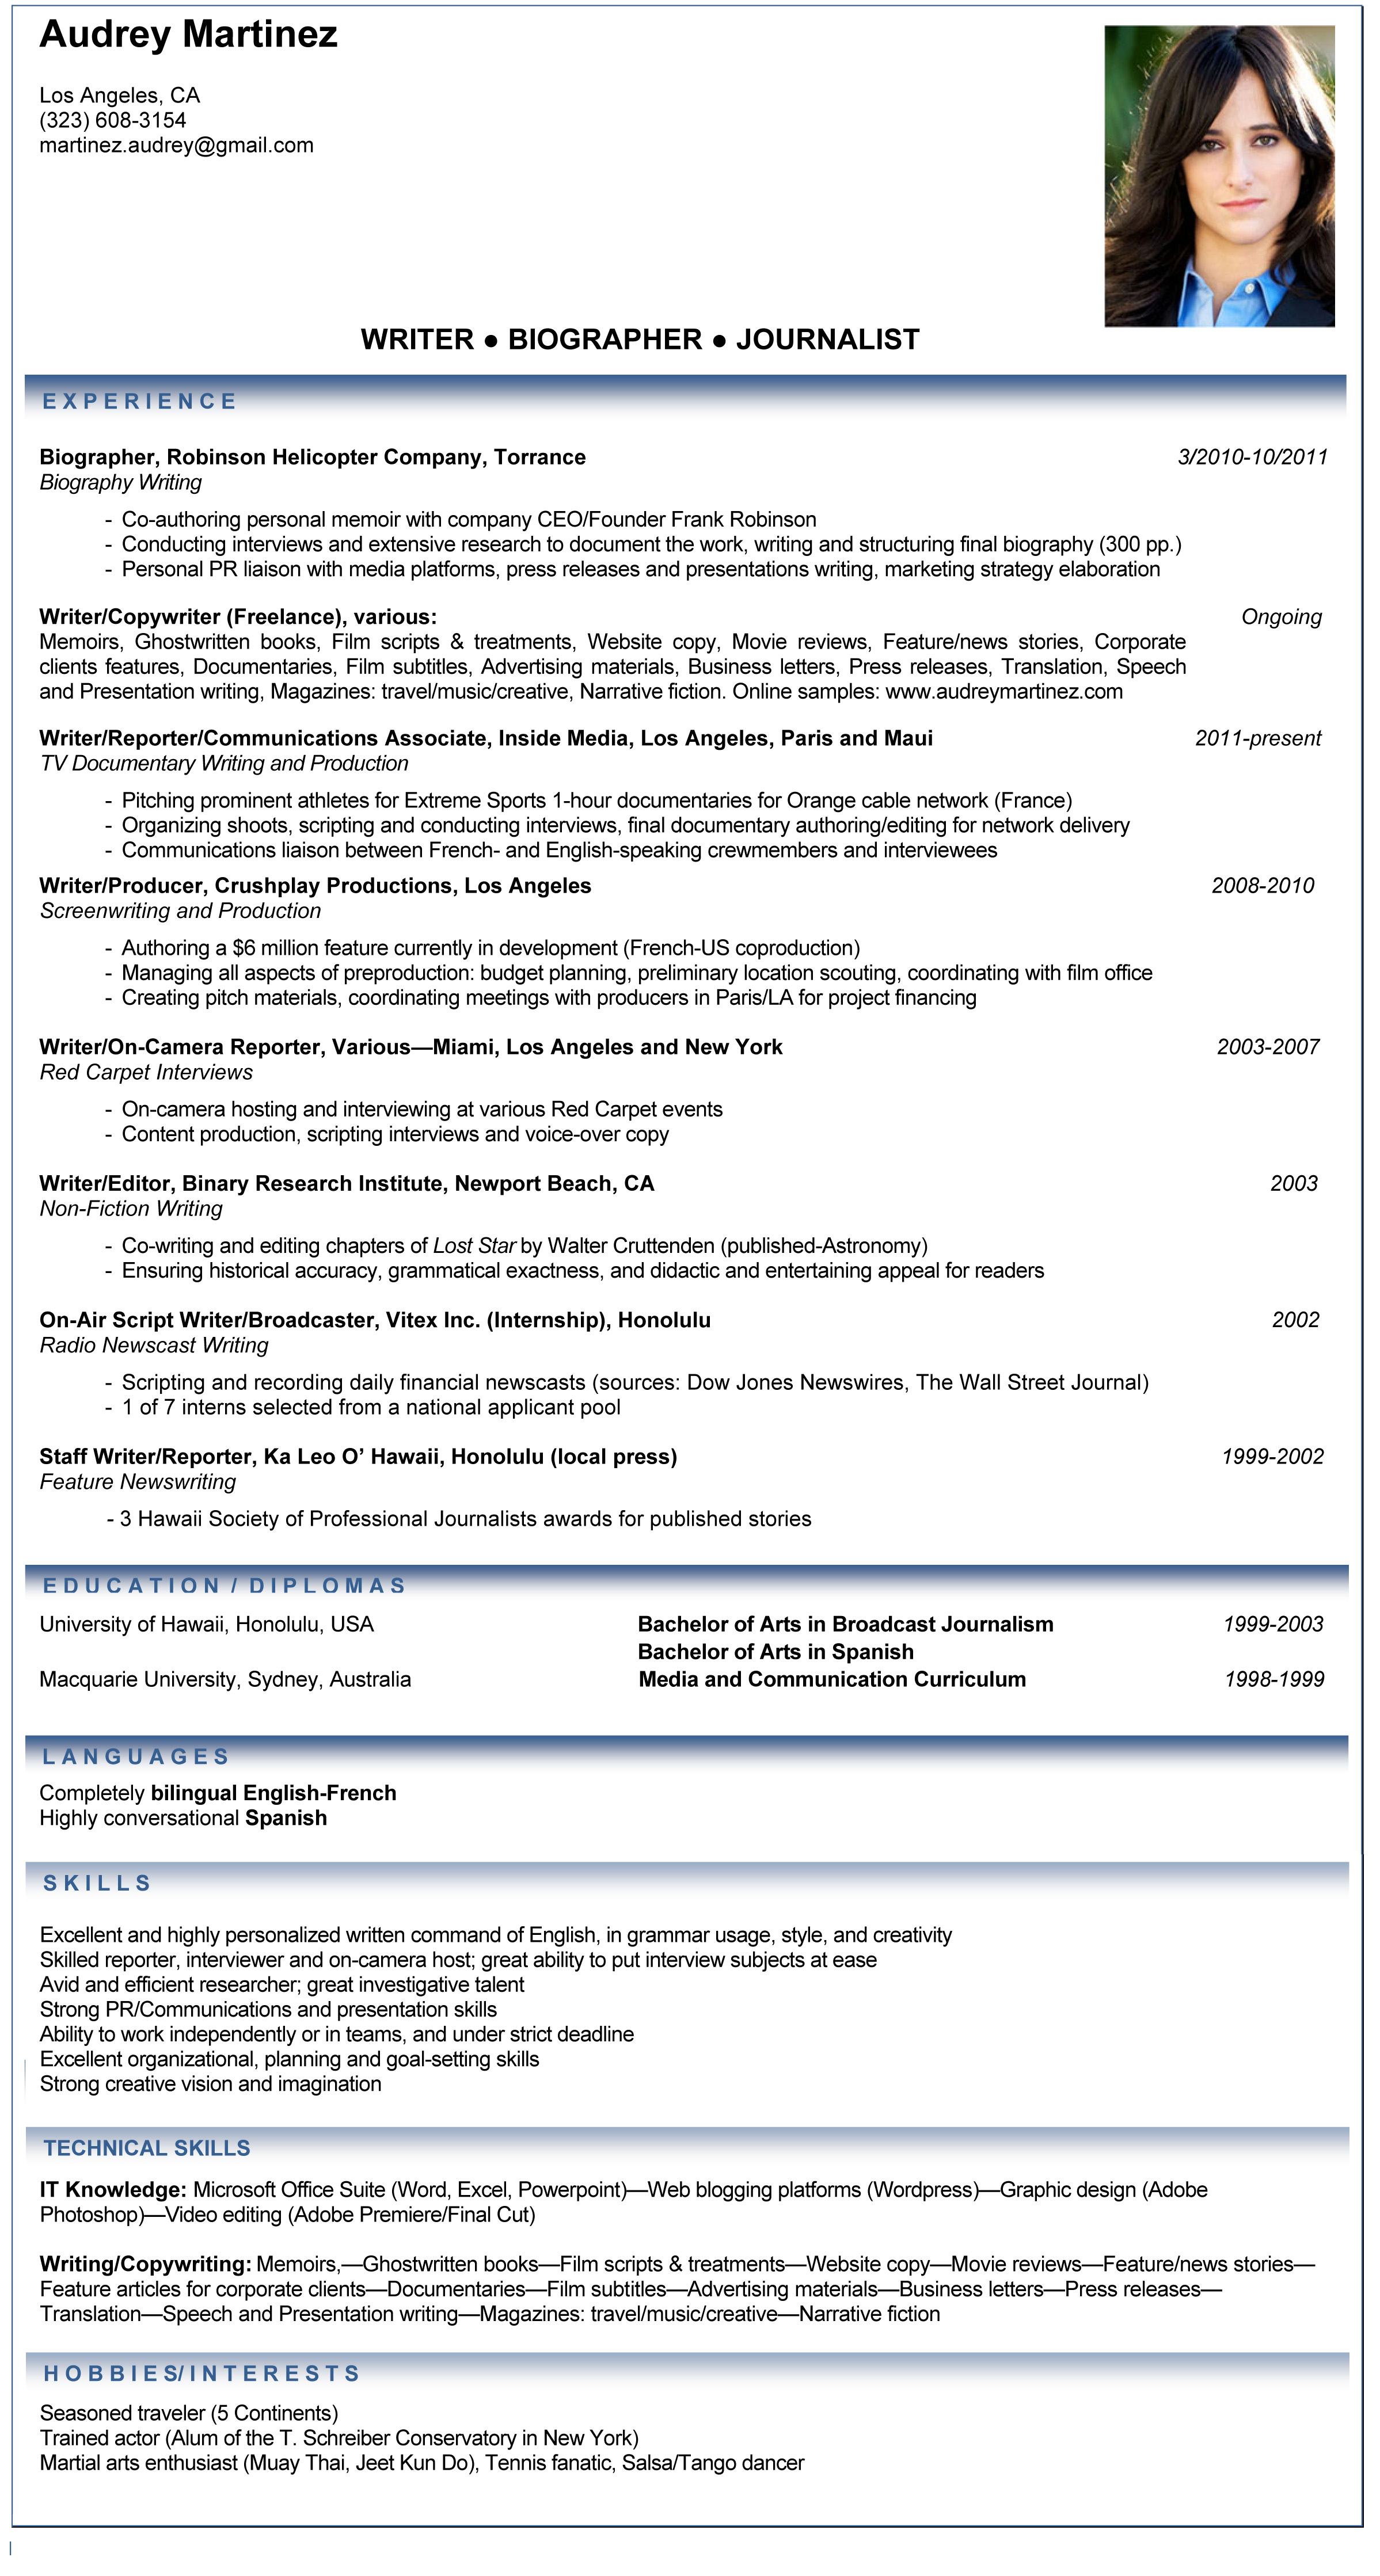 resume samples journalist professional resume cover letter sample resume samples journalist professionals resume cv samples professional resumecv audrey martinez